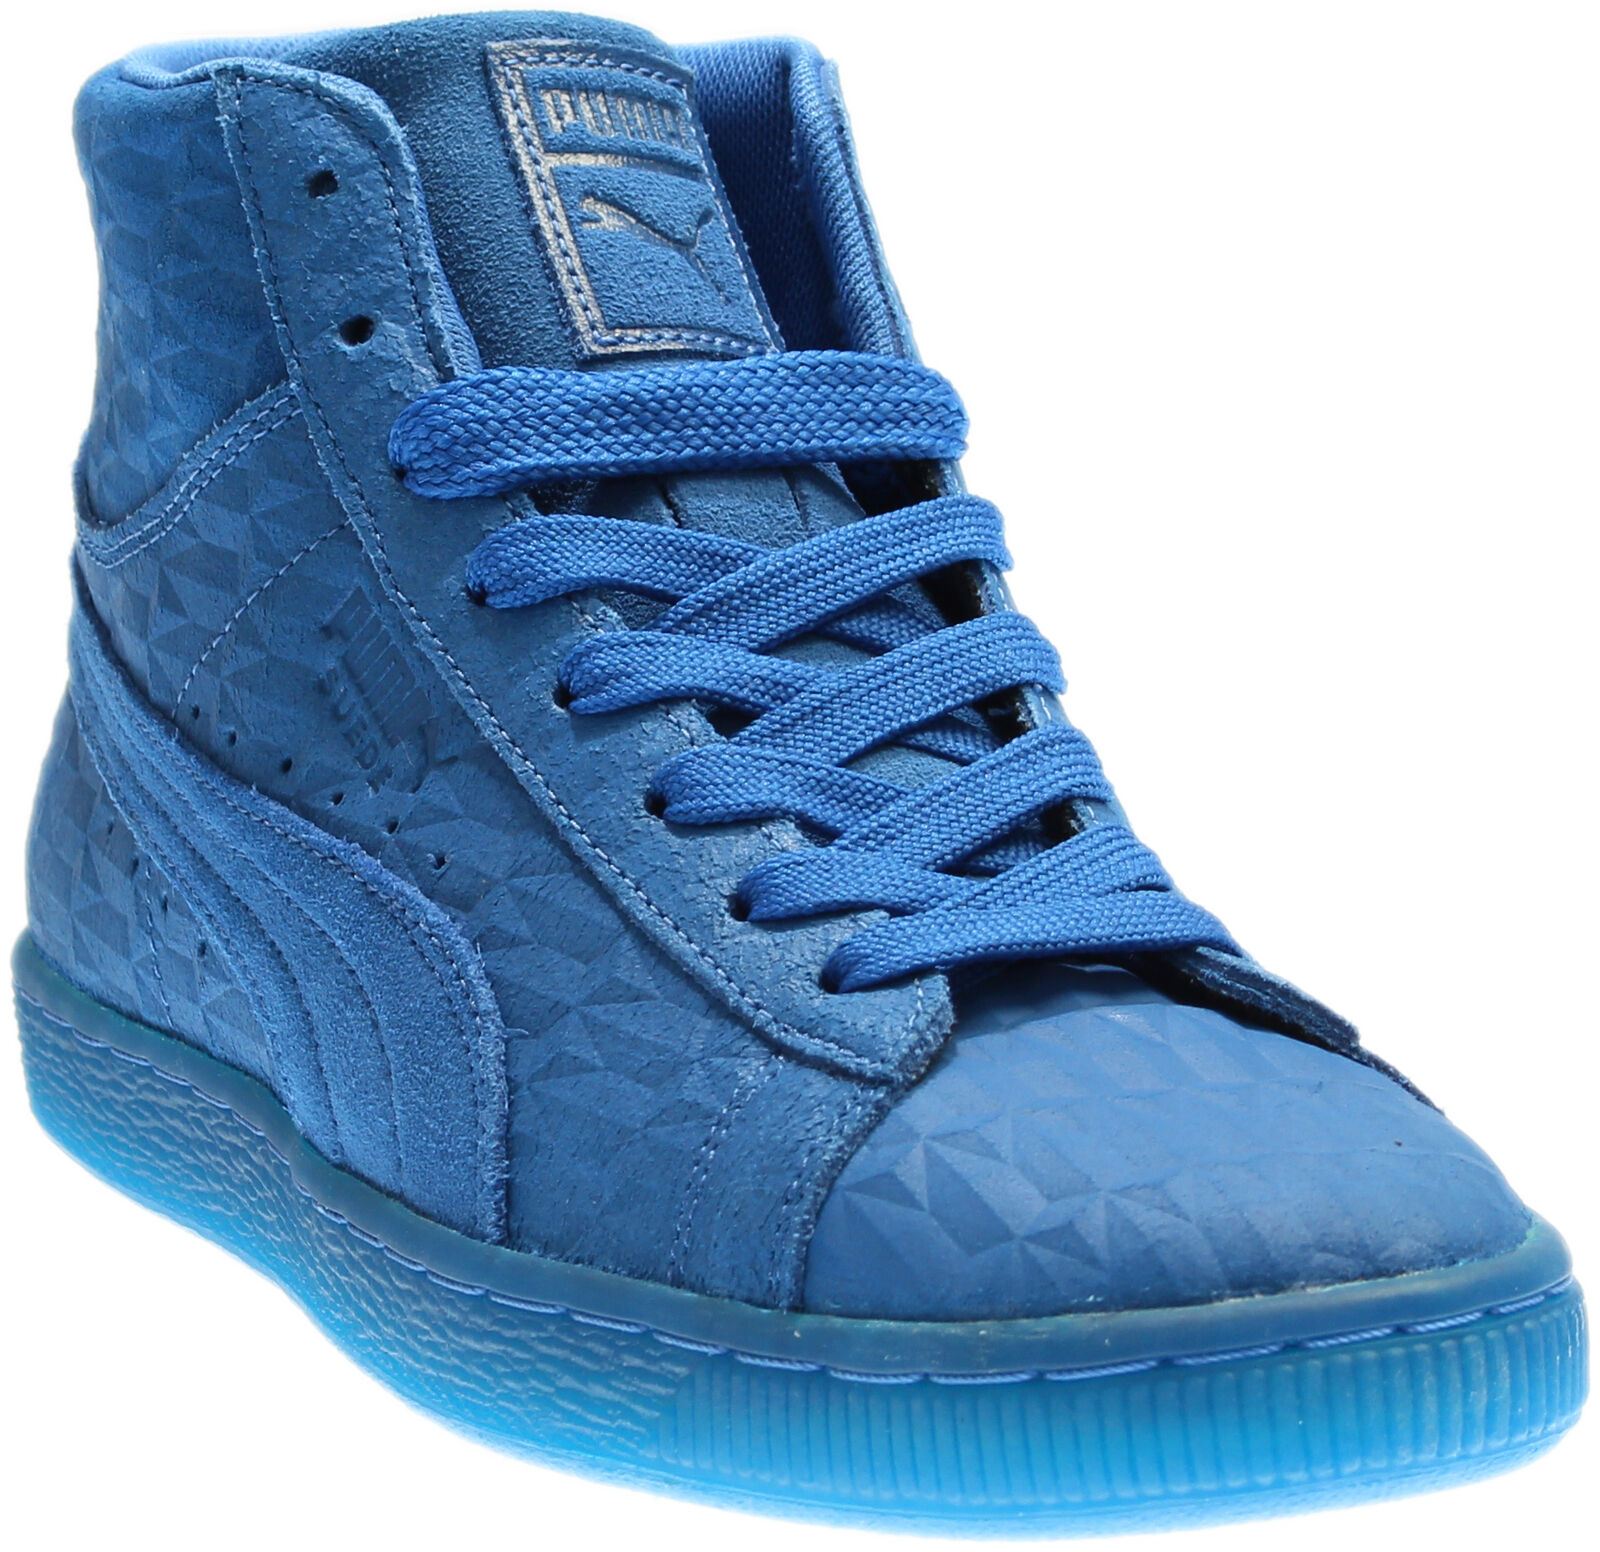 Puma Suede Mid Me Iced Running shoes - bluee - Mens